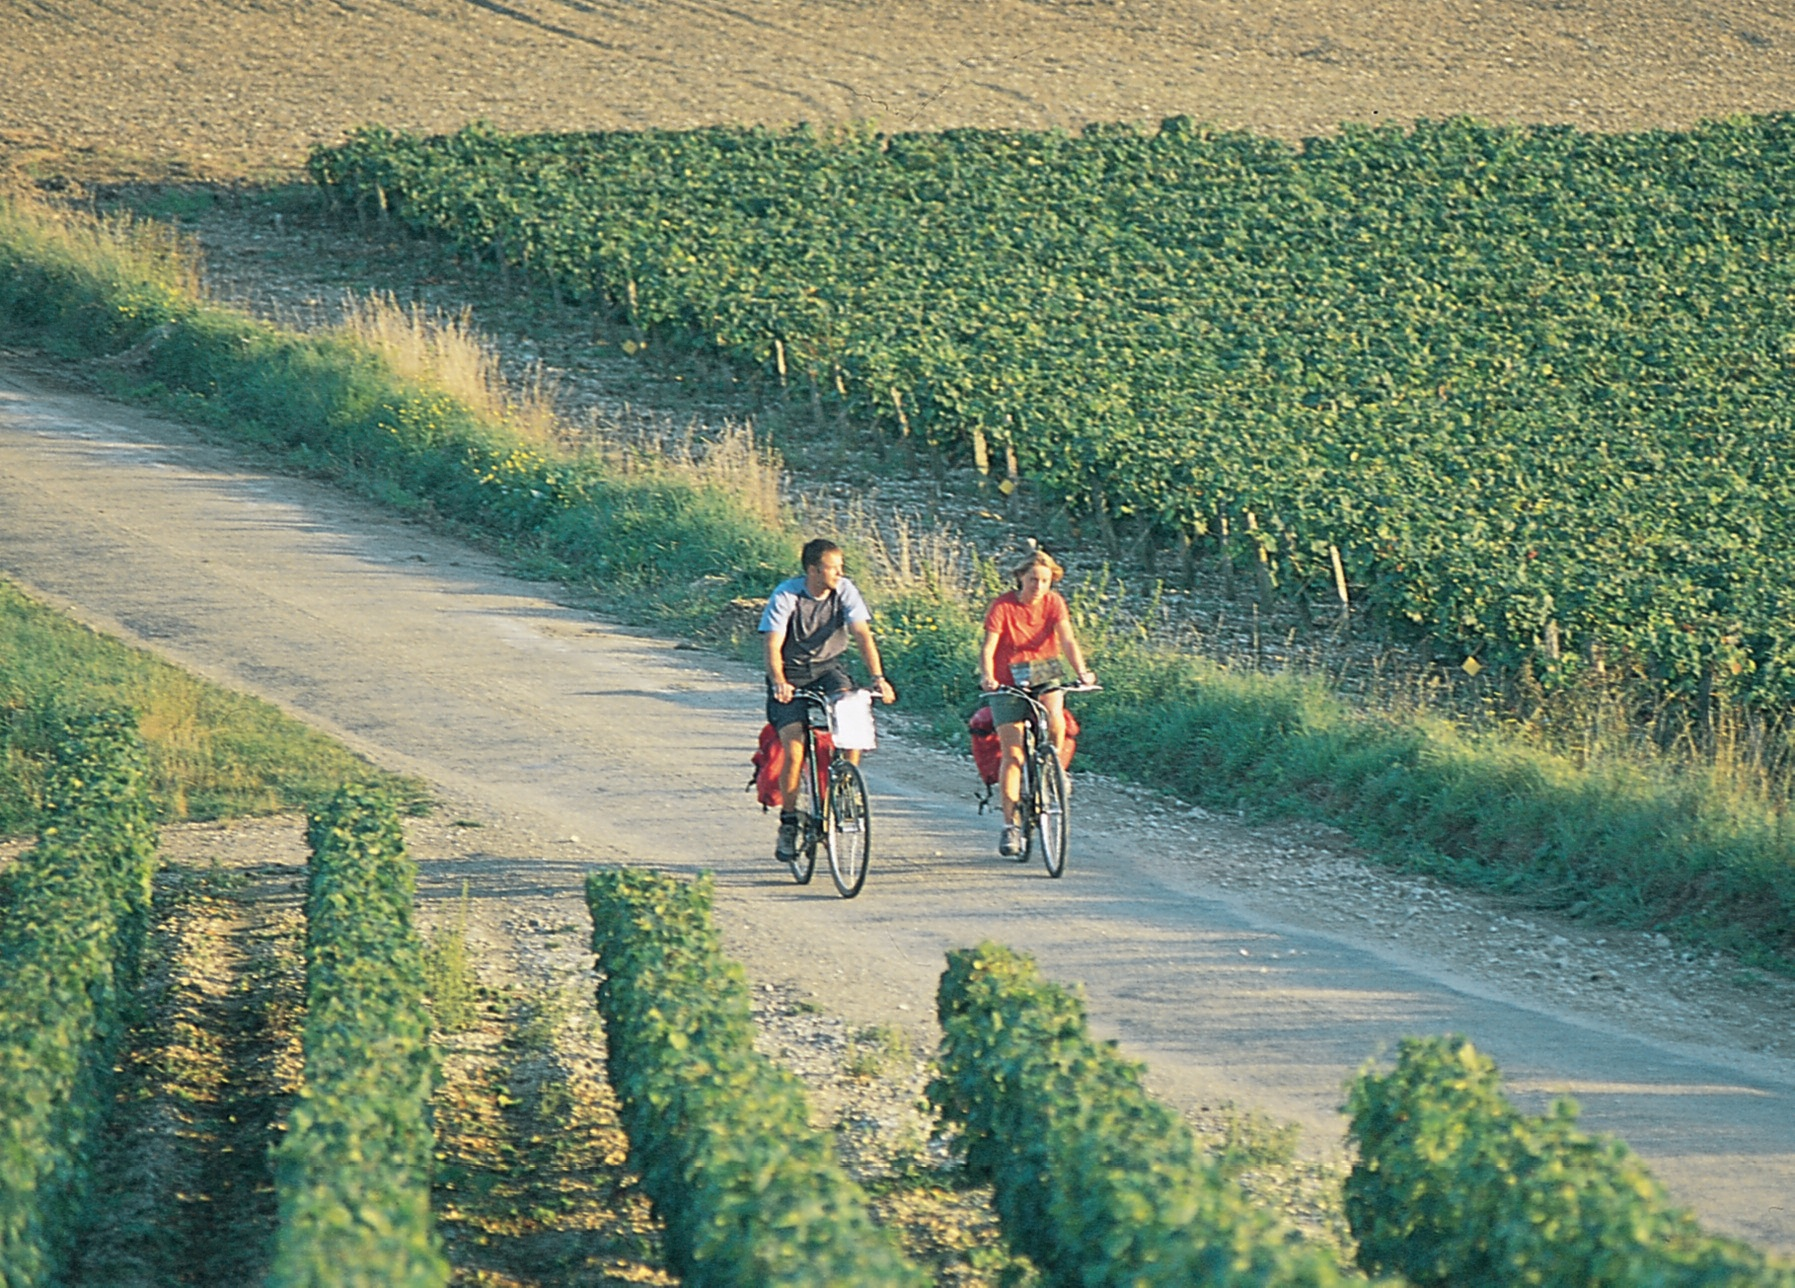 Headwater - Classic Burgundy Self-guided Cycling